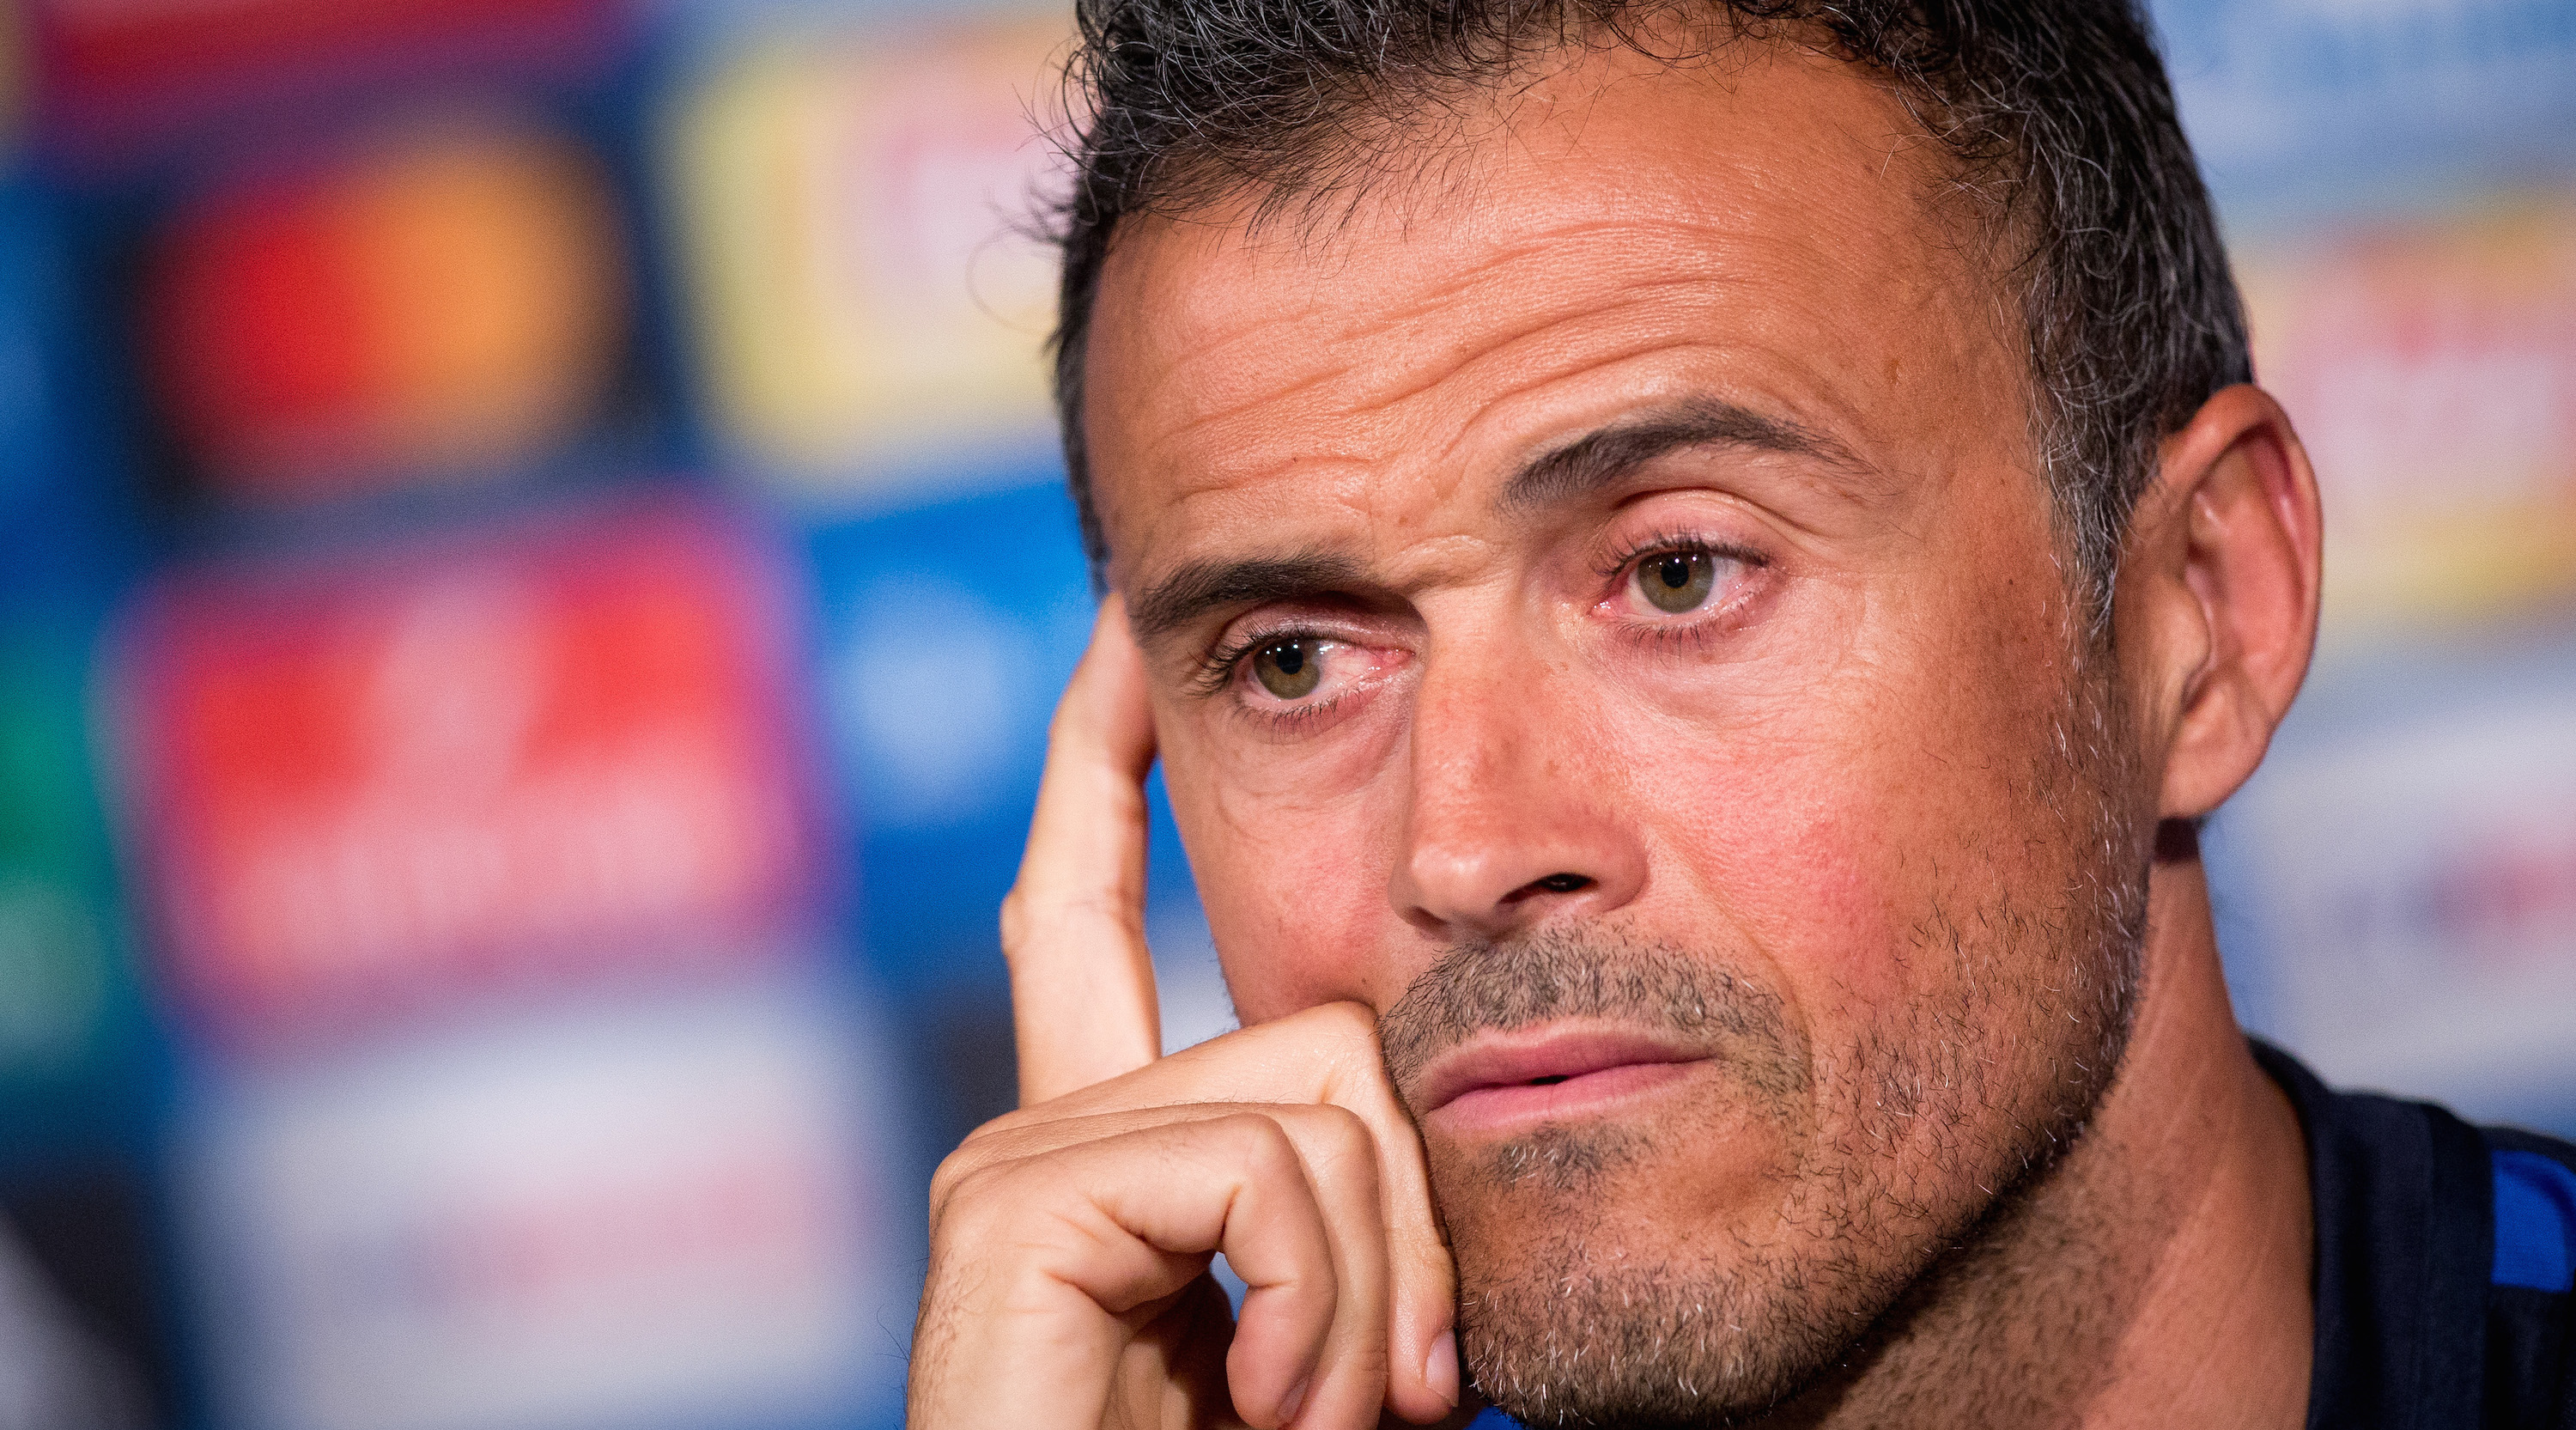 MOENCHENGLADBACH, GERMANY - SEPTEMBER 27: Coach Luis Enrique Martinez Garcia of FC Barcelona looks on during a press conference on the eve of their UEFA Champions League match against VfL Borussia Moenchengladbach at Borussia-Park on September 27, 2016 in Moenchengladbach, Germany. (Photo by Maja Hitij/Bongarts/Getty Images)